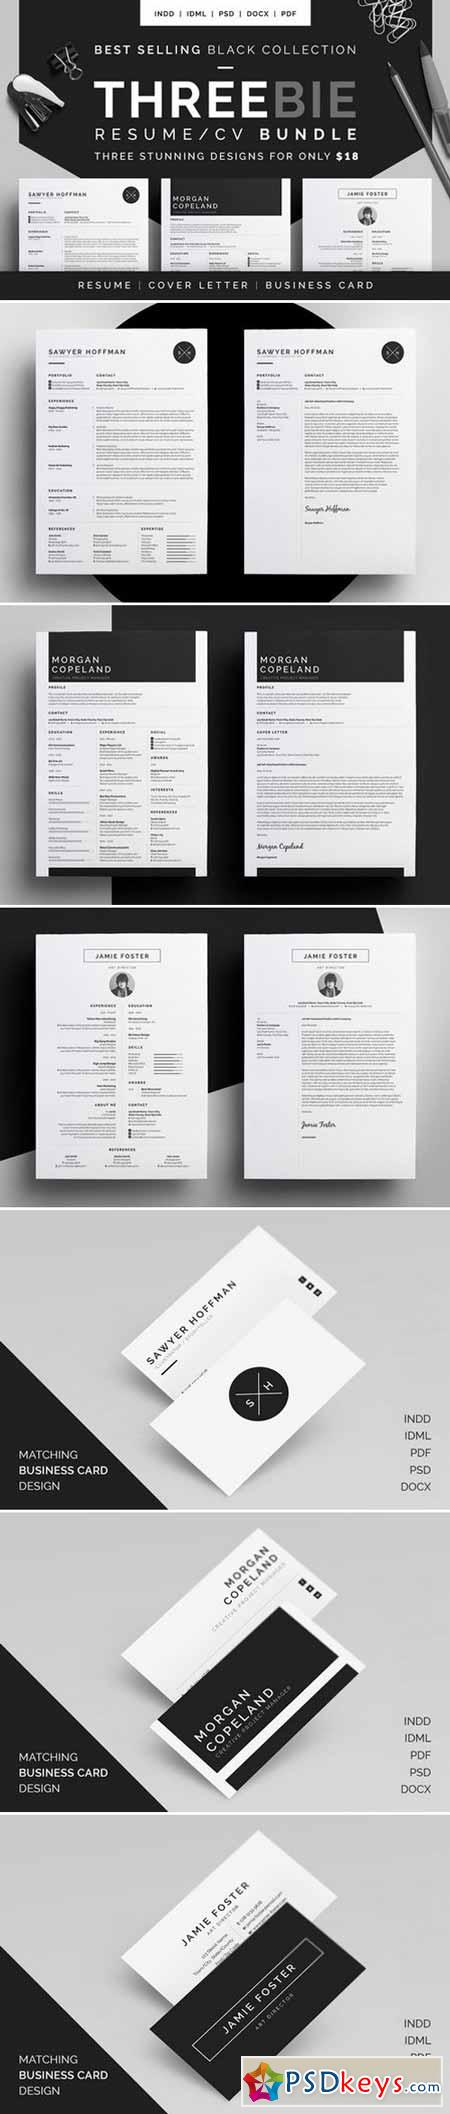 Resume CV - Threebie Bundle 1 433128